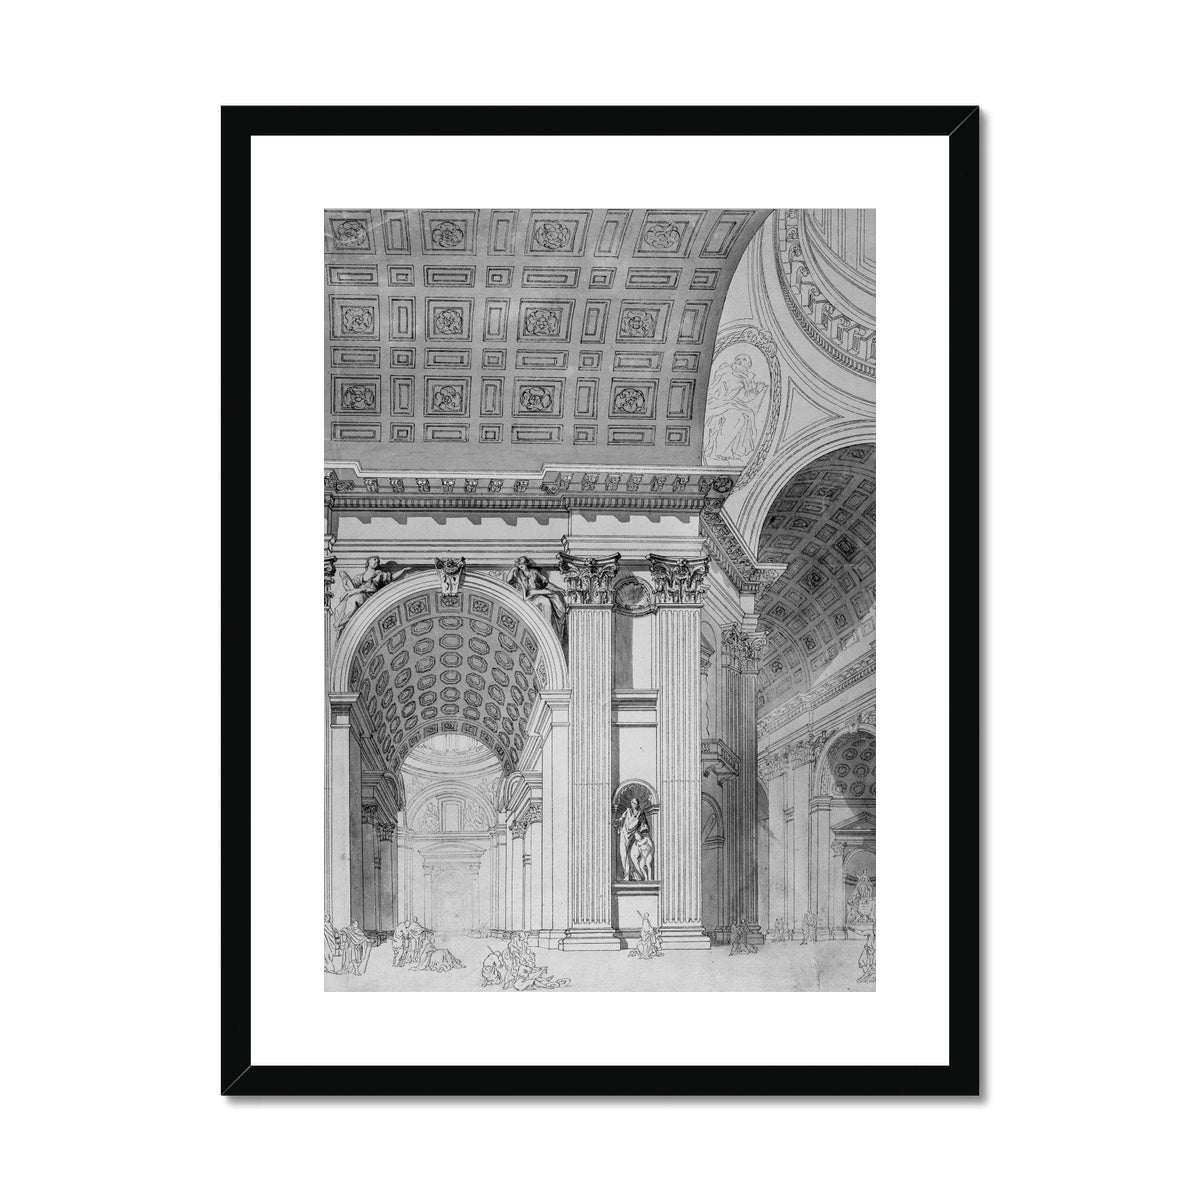 Saint Peter's Basilica - Interior Detail -  Framed & Mounted Print